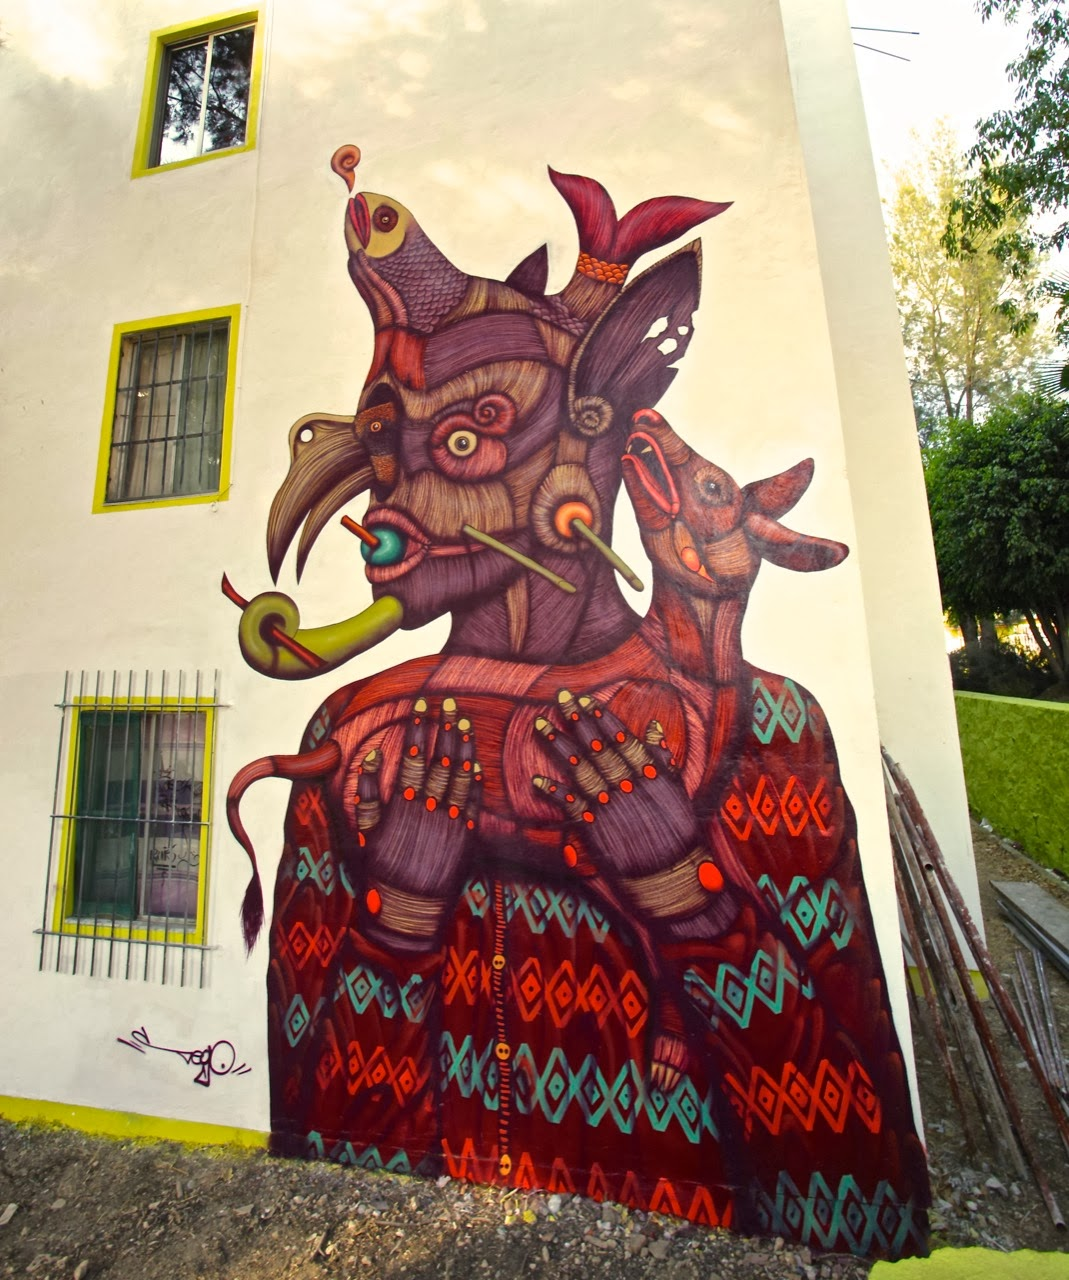 Sego just sent us a series of pictures from his newest mural on the streets of Oaxaca, Mexico. Organised by Mamutt Creativity, the Mexican artist quickly painted this signature mural. 1